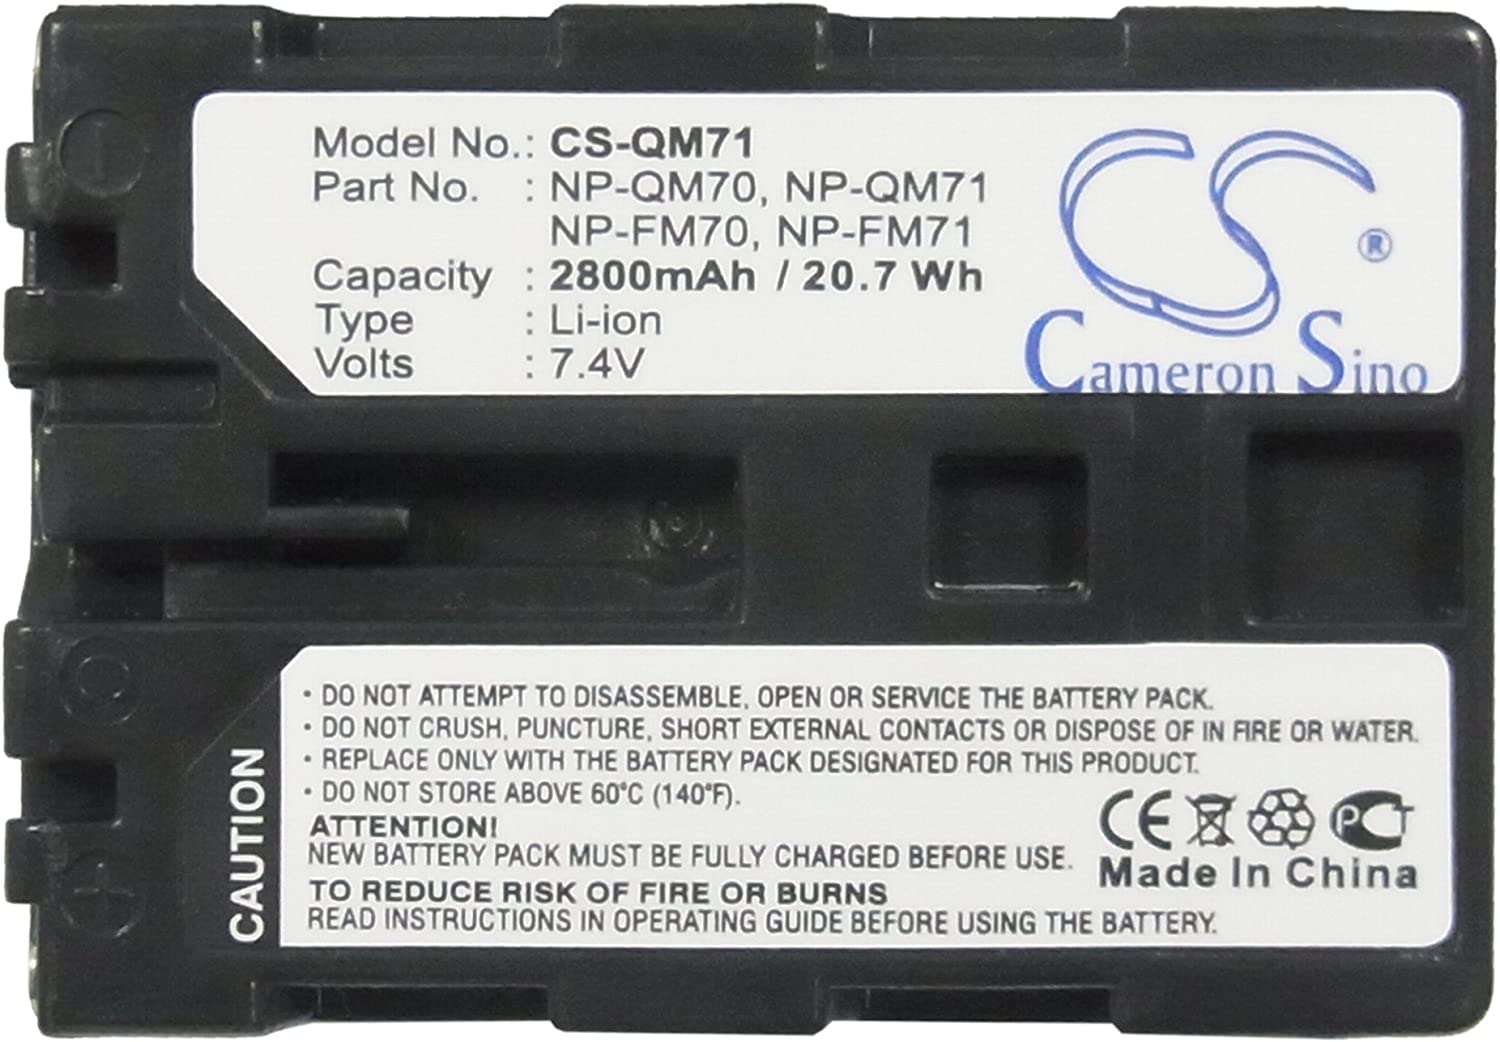 XPS Replacement Battery for Sony CCD-TRV108 CCD-TRV118 CCD-TRV128 CCD-TRV138 CCD-TRV308 CCD-TRV318 CCD-TRV328 CCD-TRV338 CCD-TRV608 DCR-DVD100